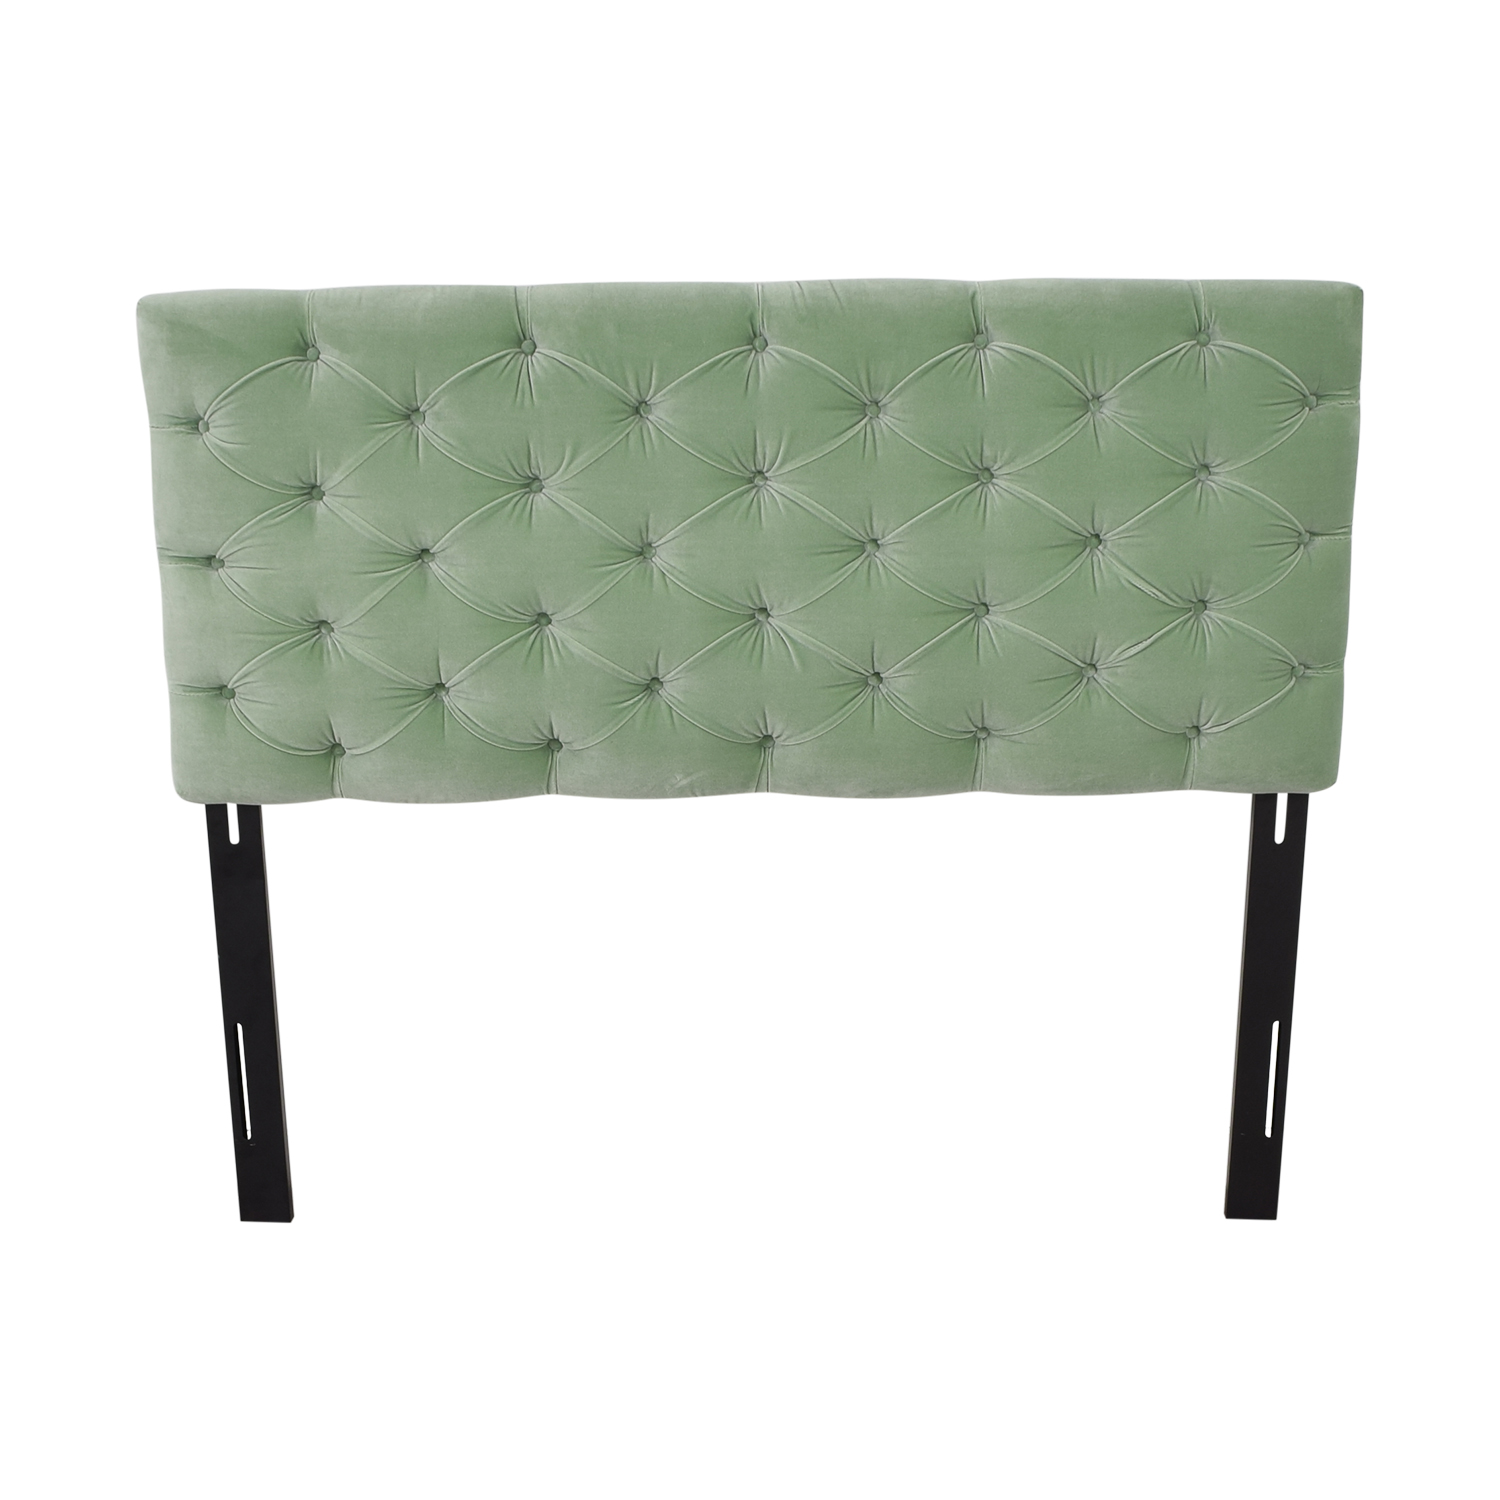 buy Urban Outfitters Urban Outfitters Regency Tufted Headboard online